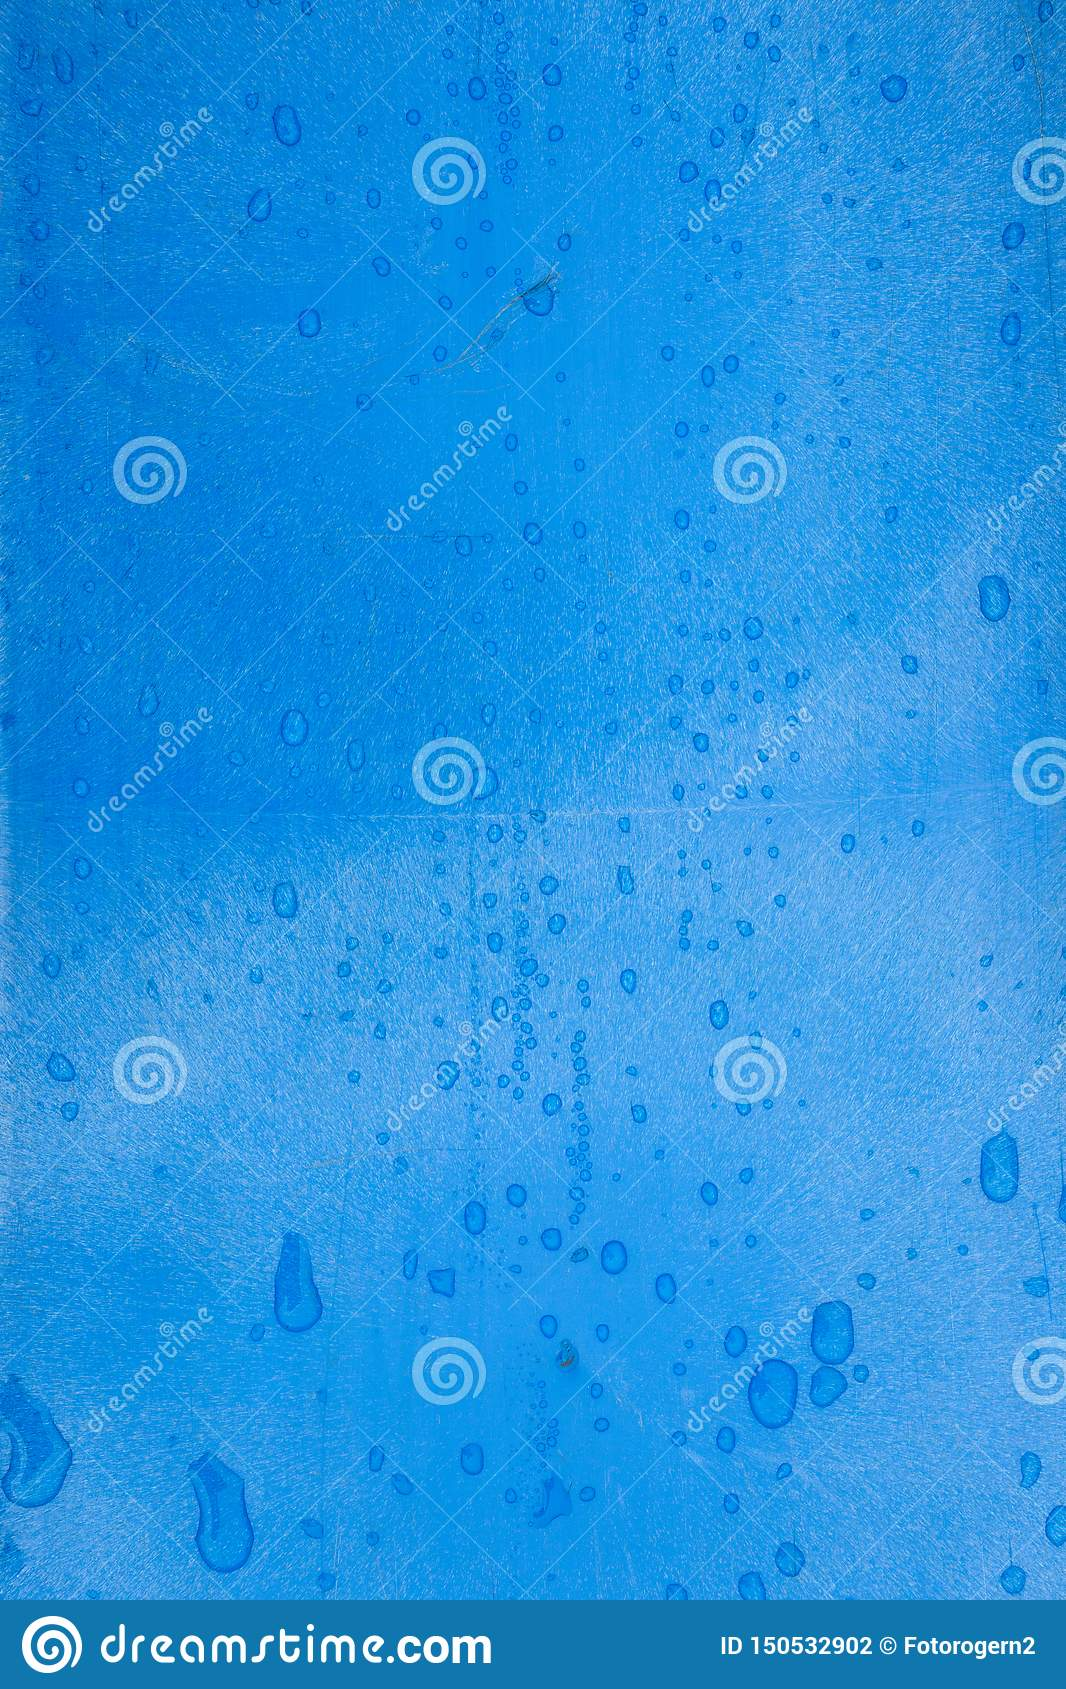 Blue plastic texture with raindrops